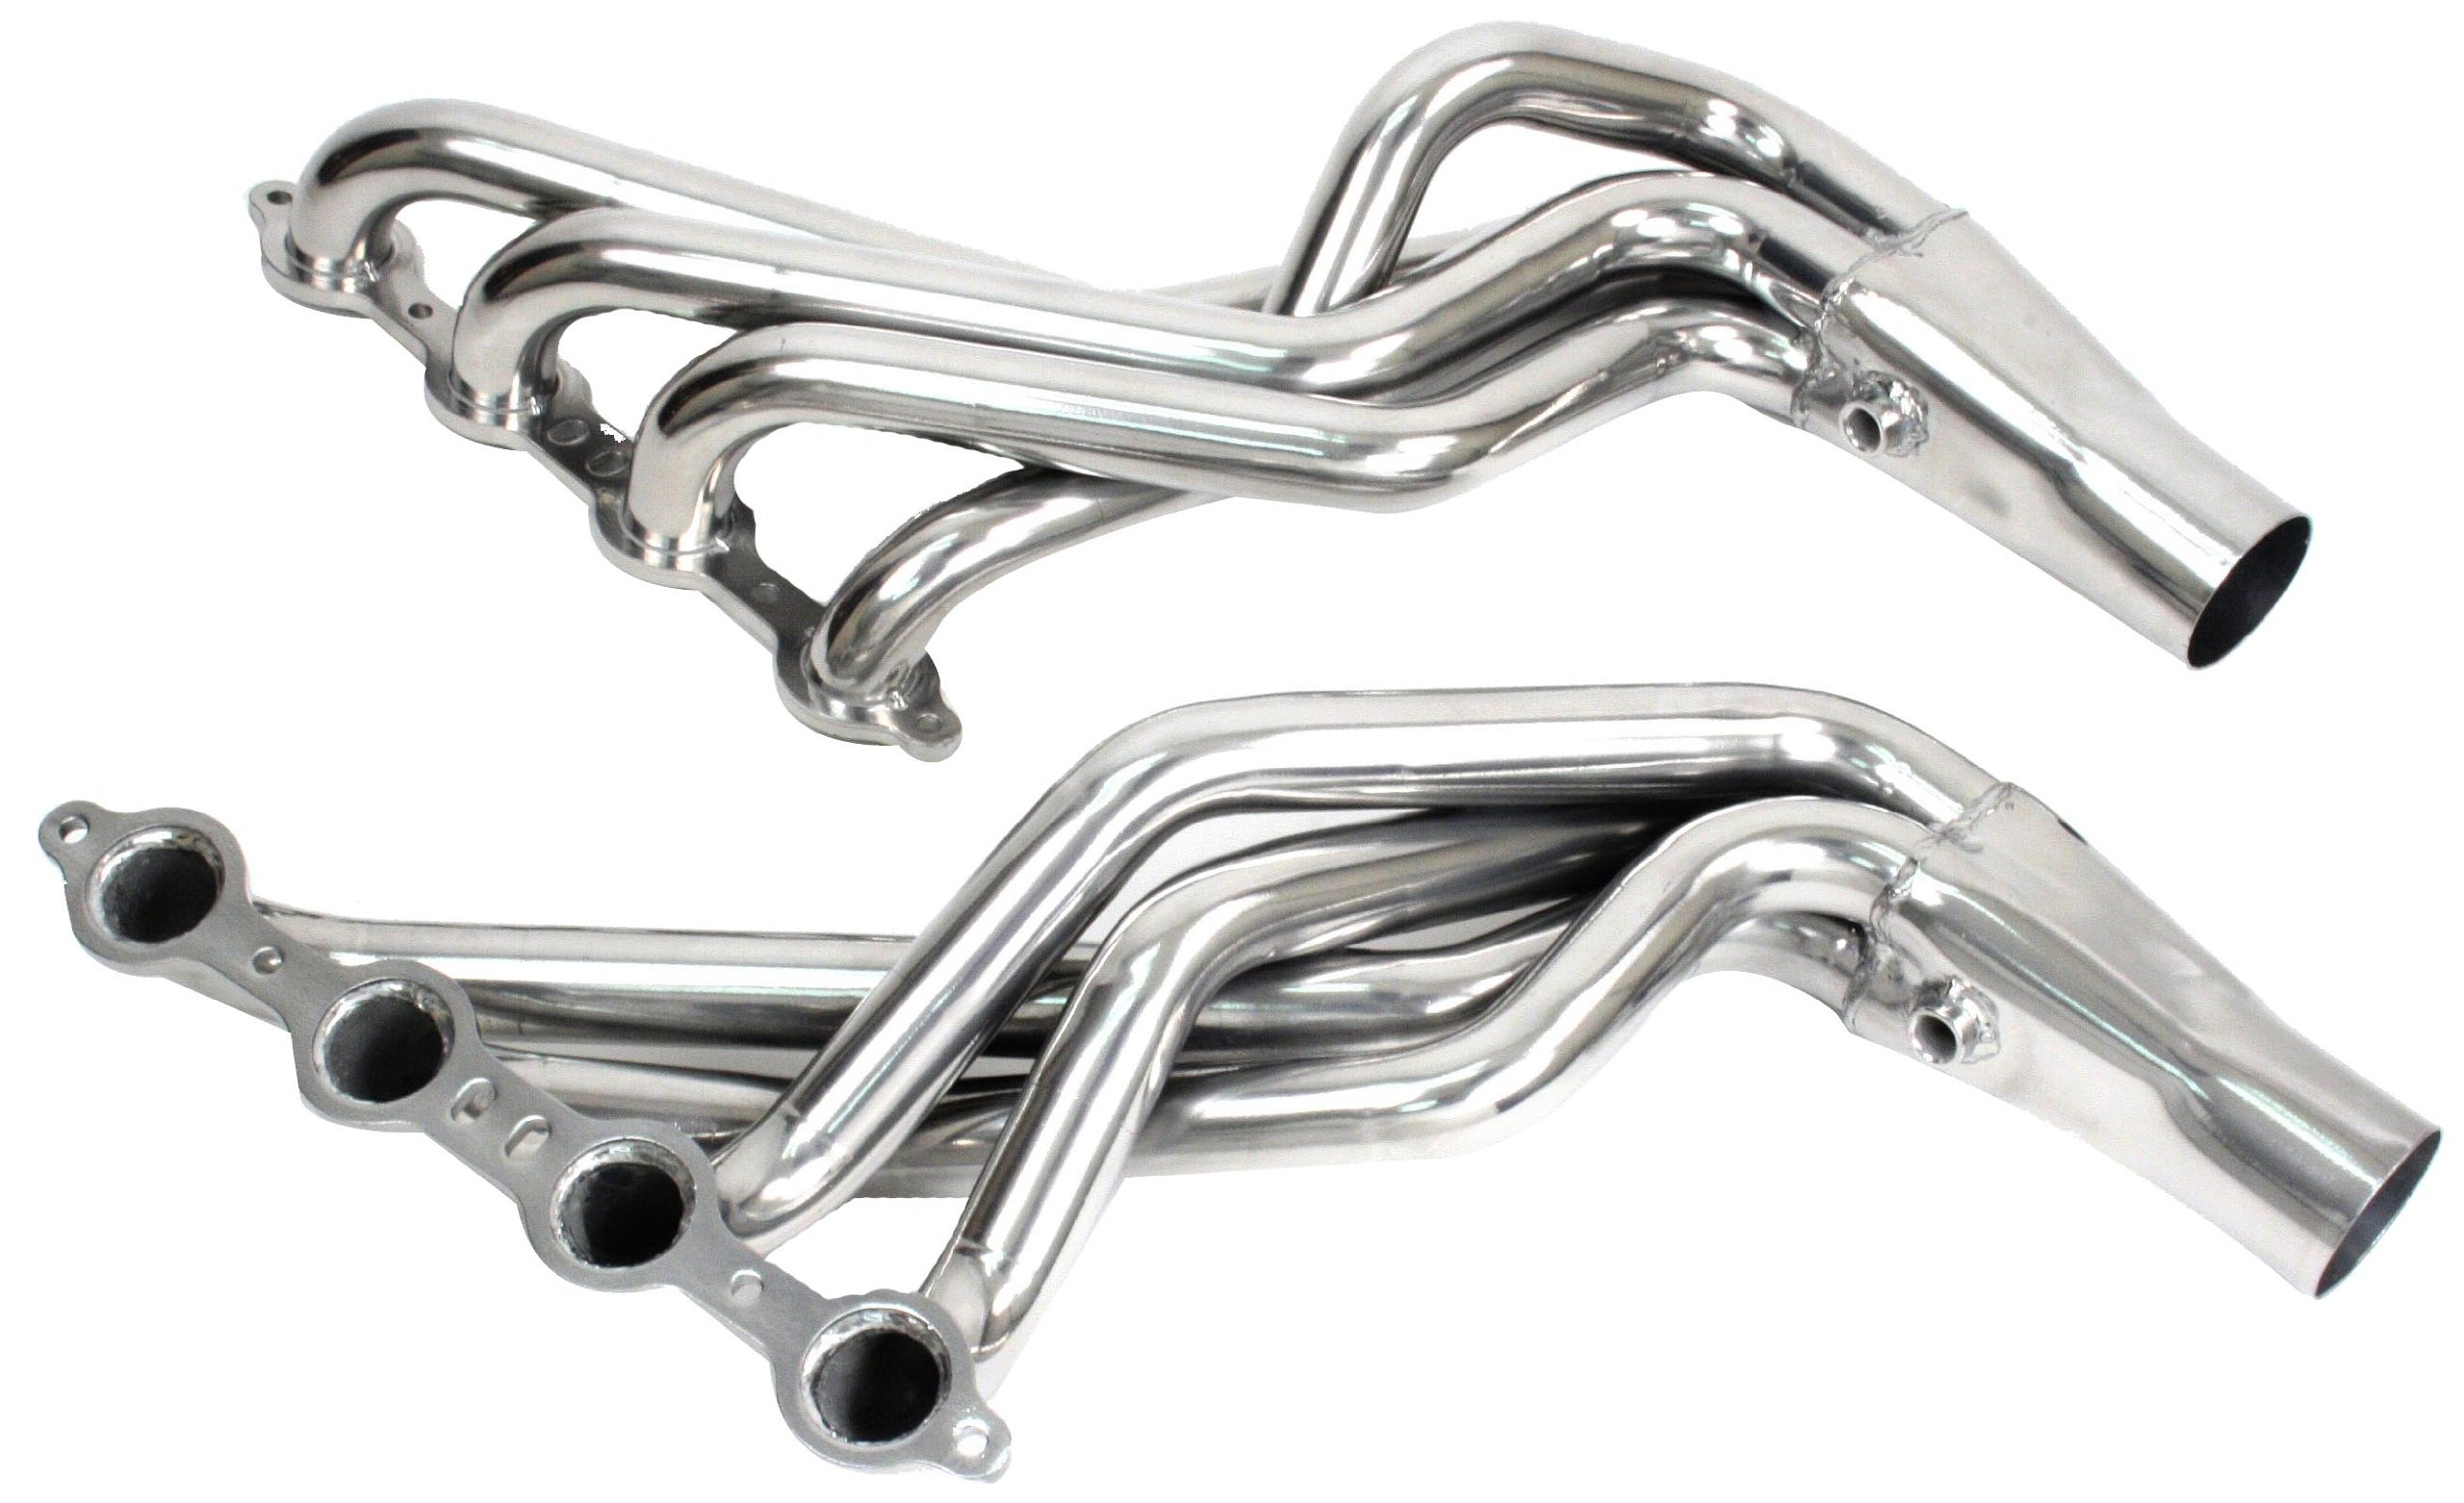 PaceSetter 72C2272 Long Tube Header with Armor Coat for 5.7L, 6.0L Cadillac CTS-V 2004-07 by Pacesetter (Image #1)